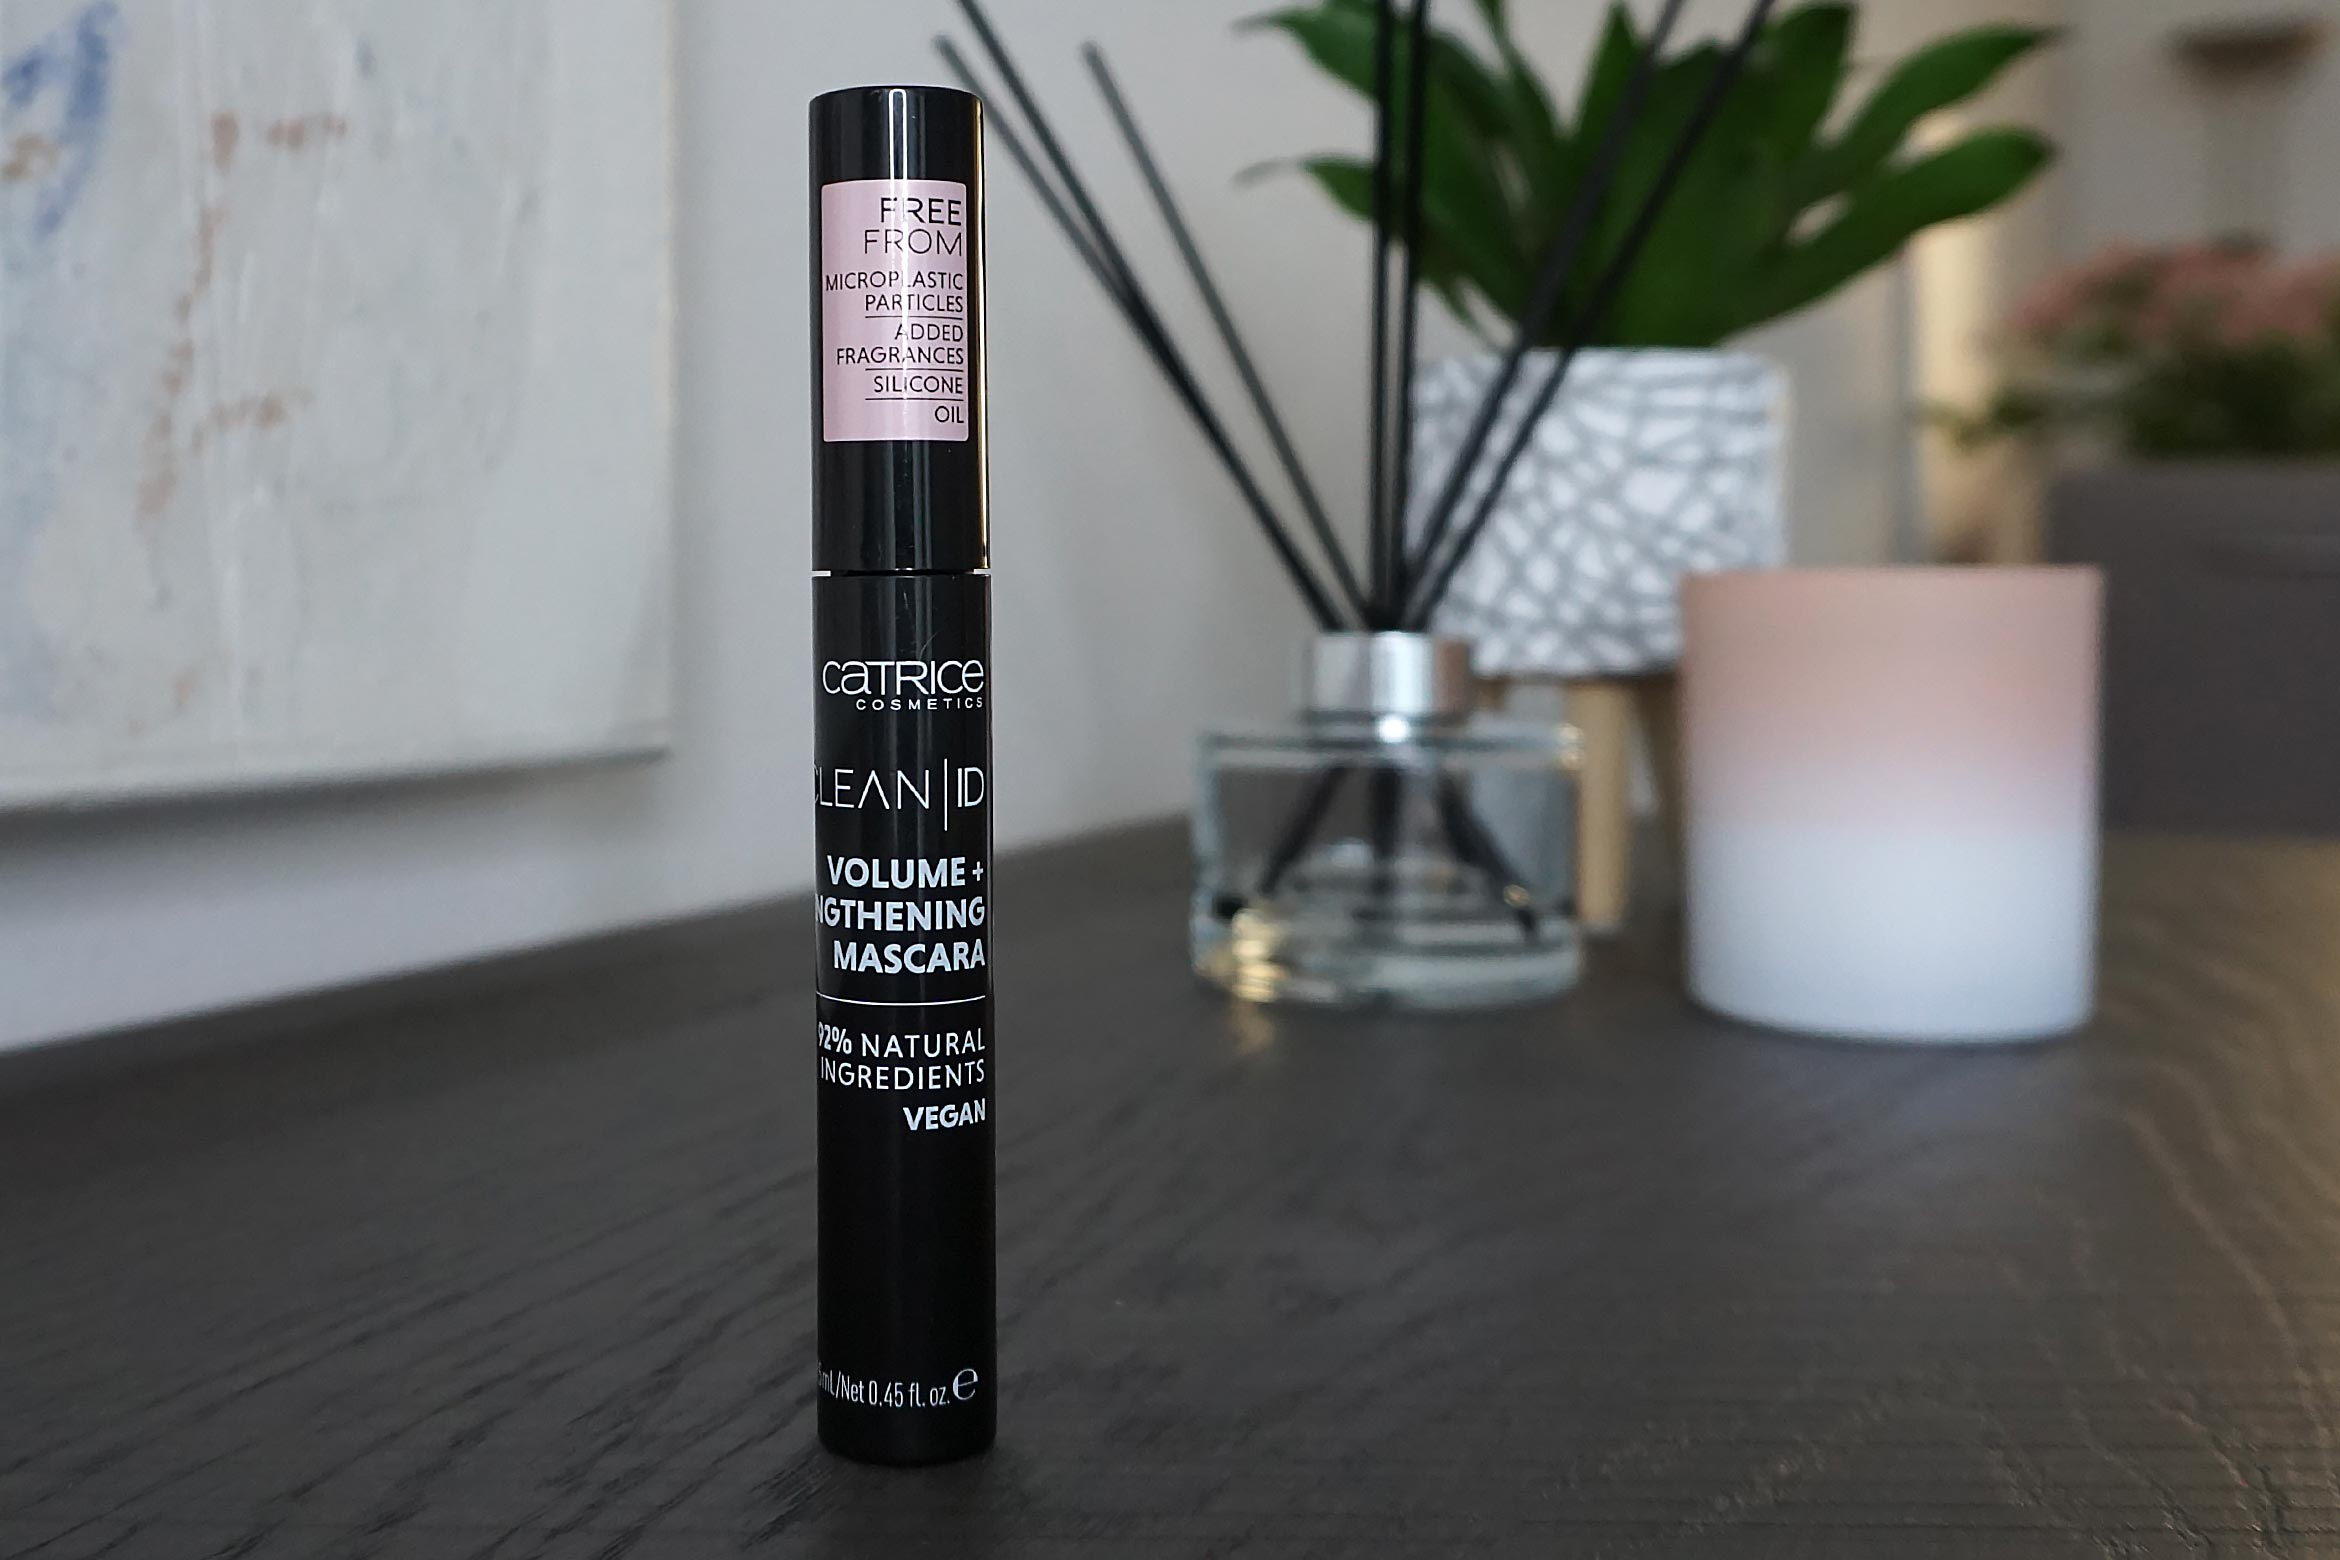 catrice-clean-id-volume-lengthening-mascara-review-5